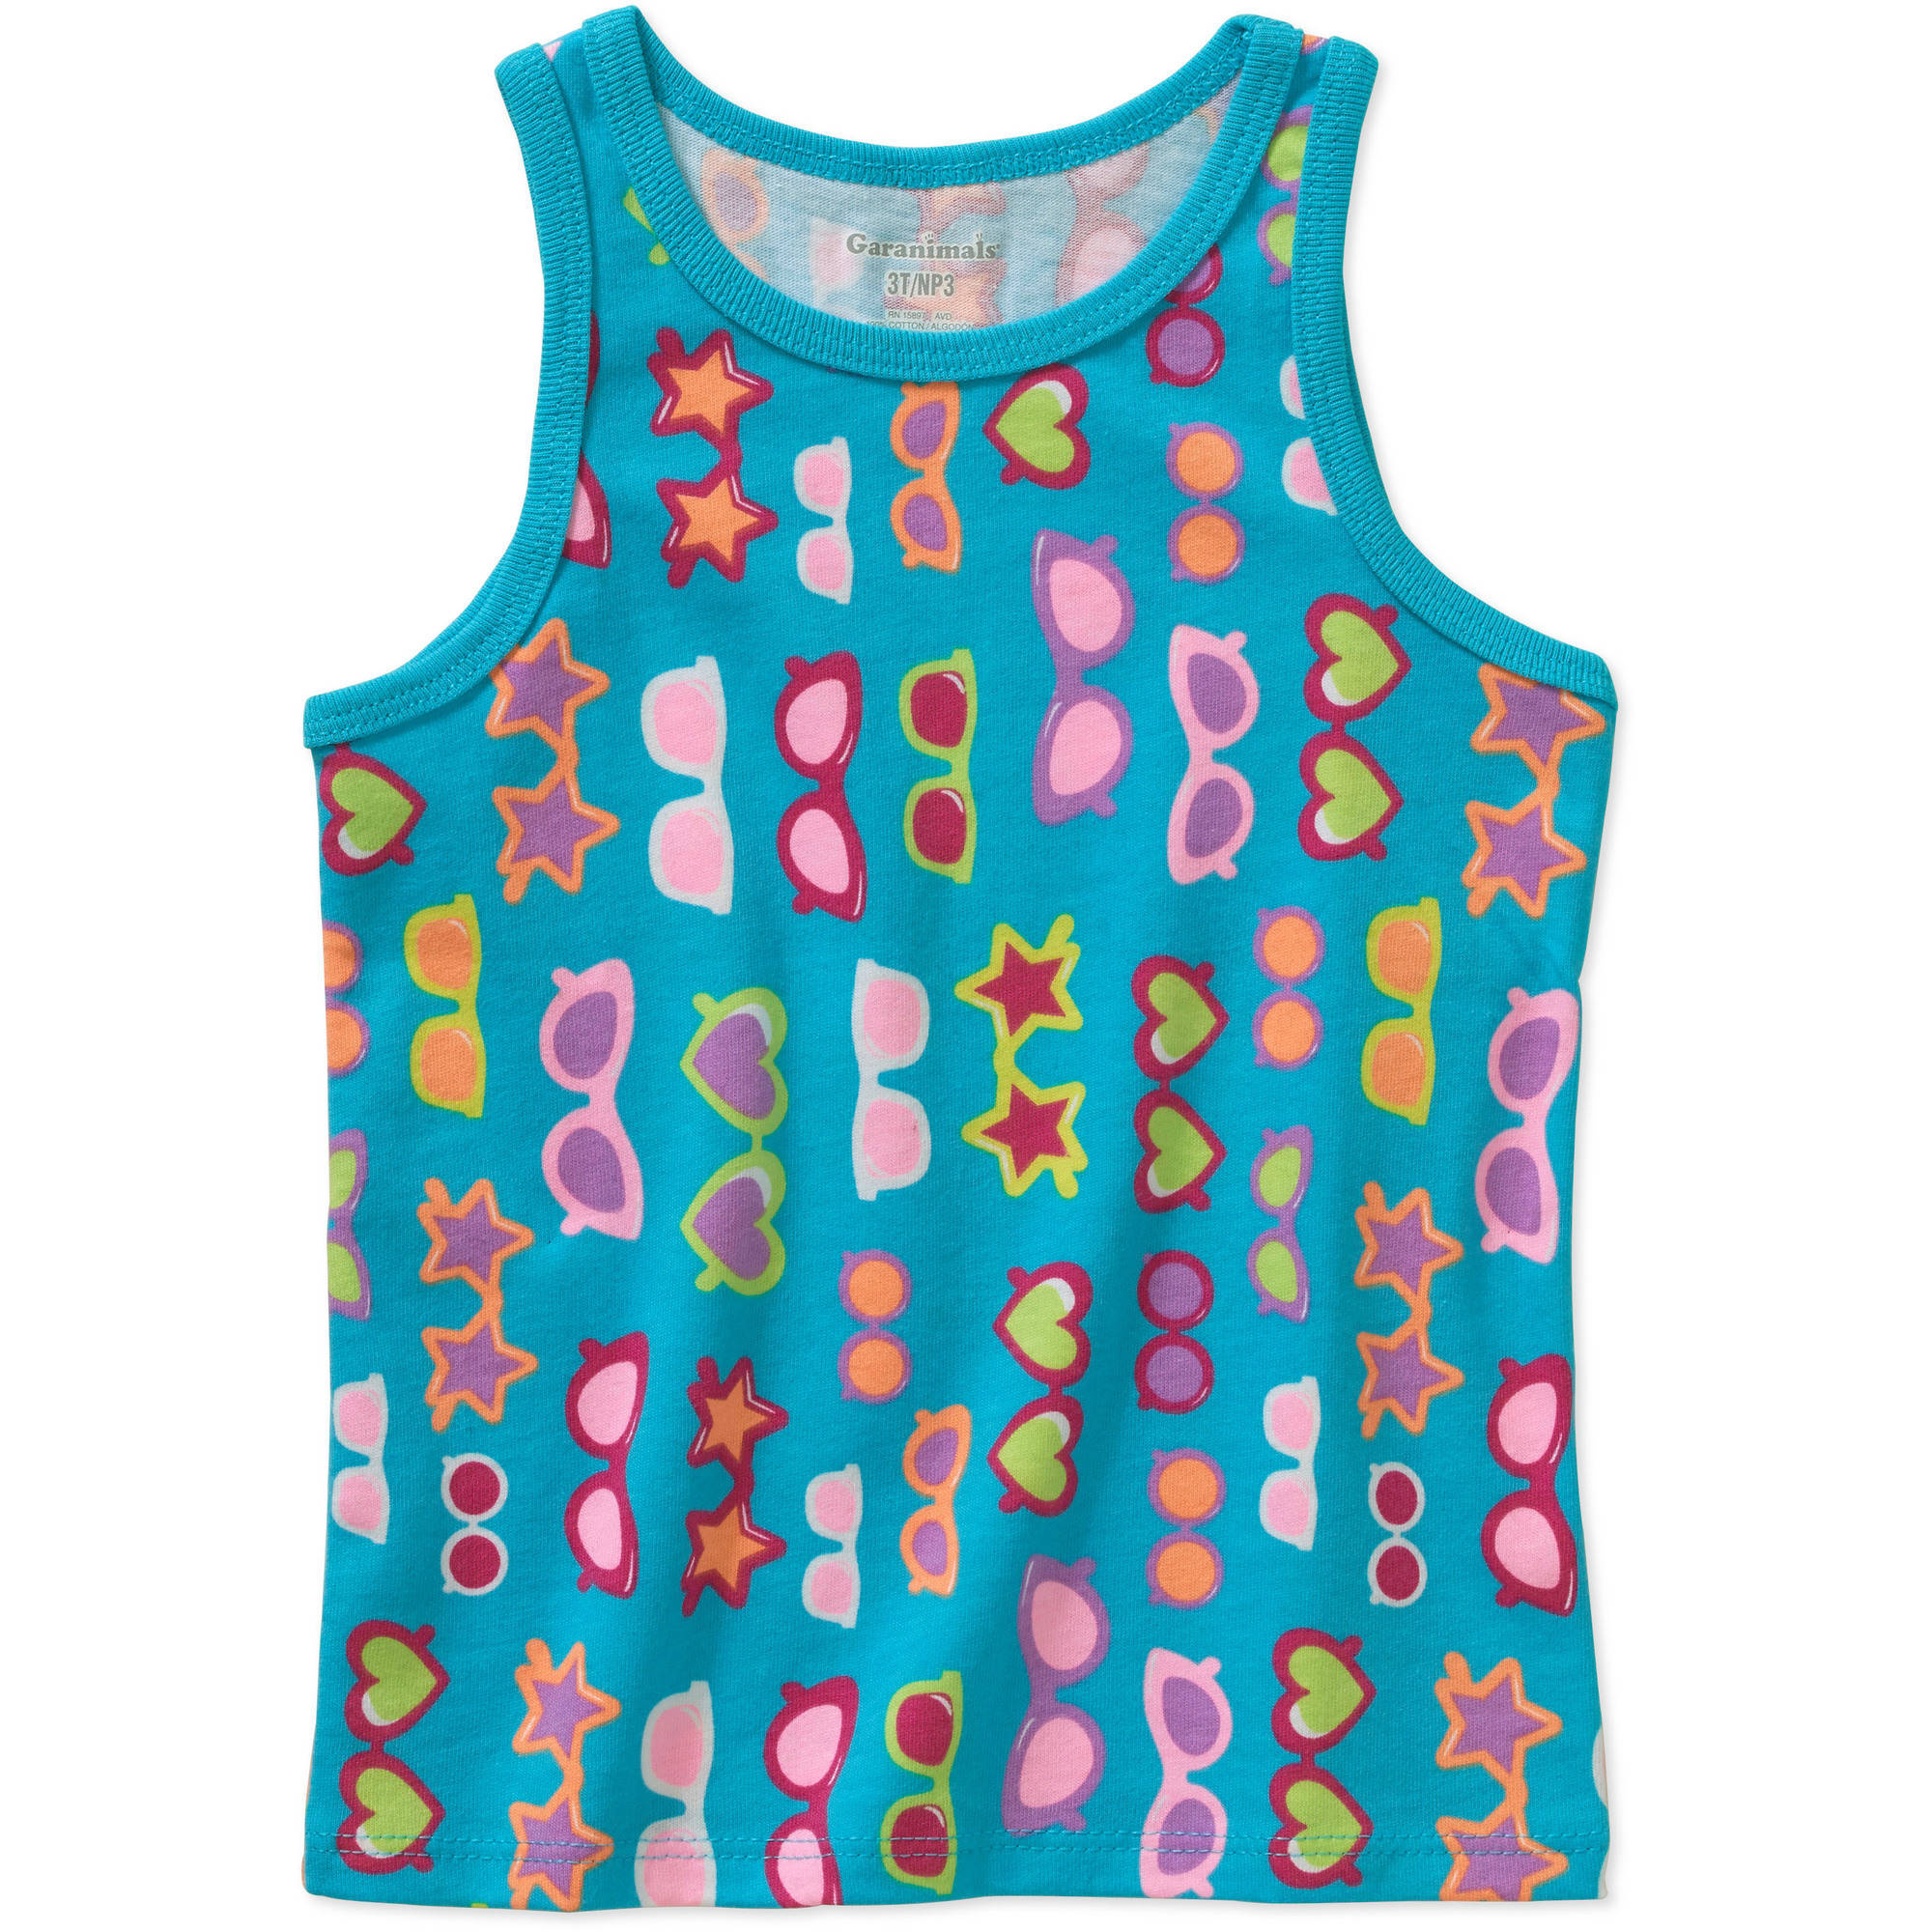 Garanimals Baby Toddler Girl Printed Tank Top